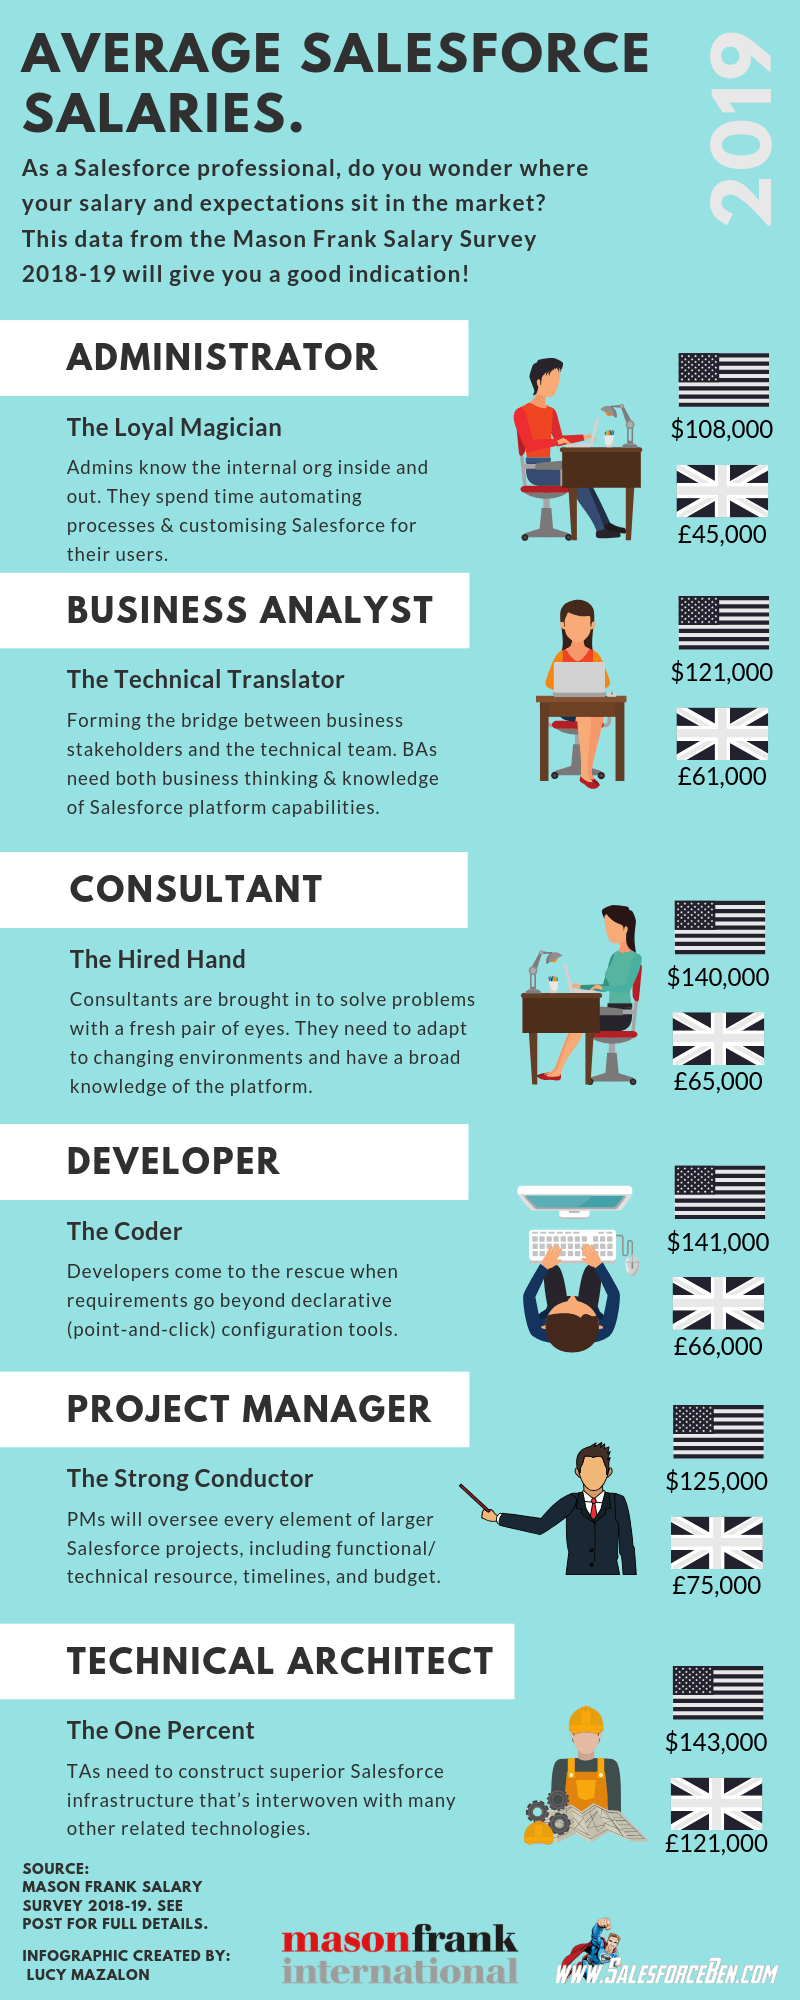 These are the average Salesforce Salaries for US and UK